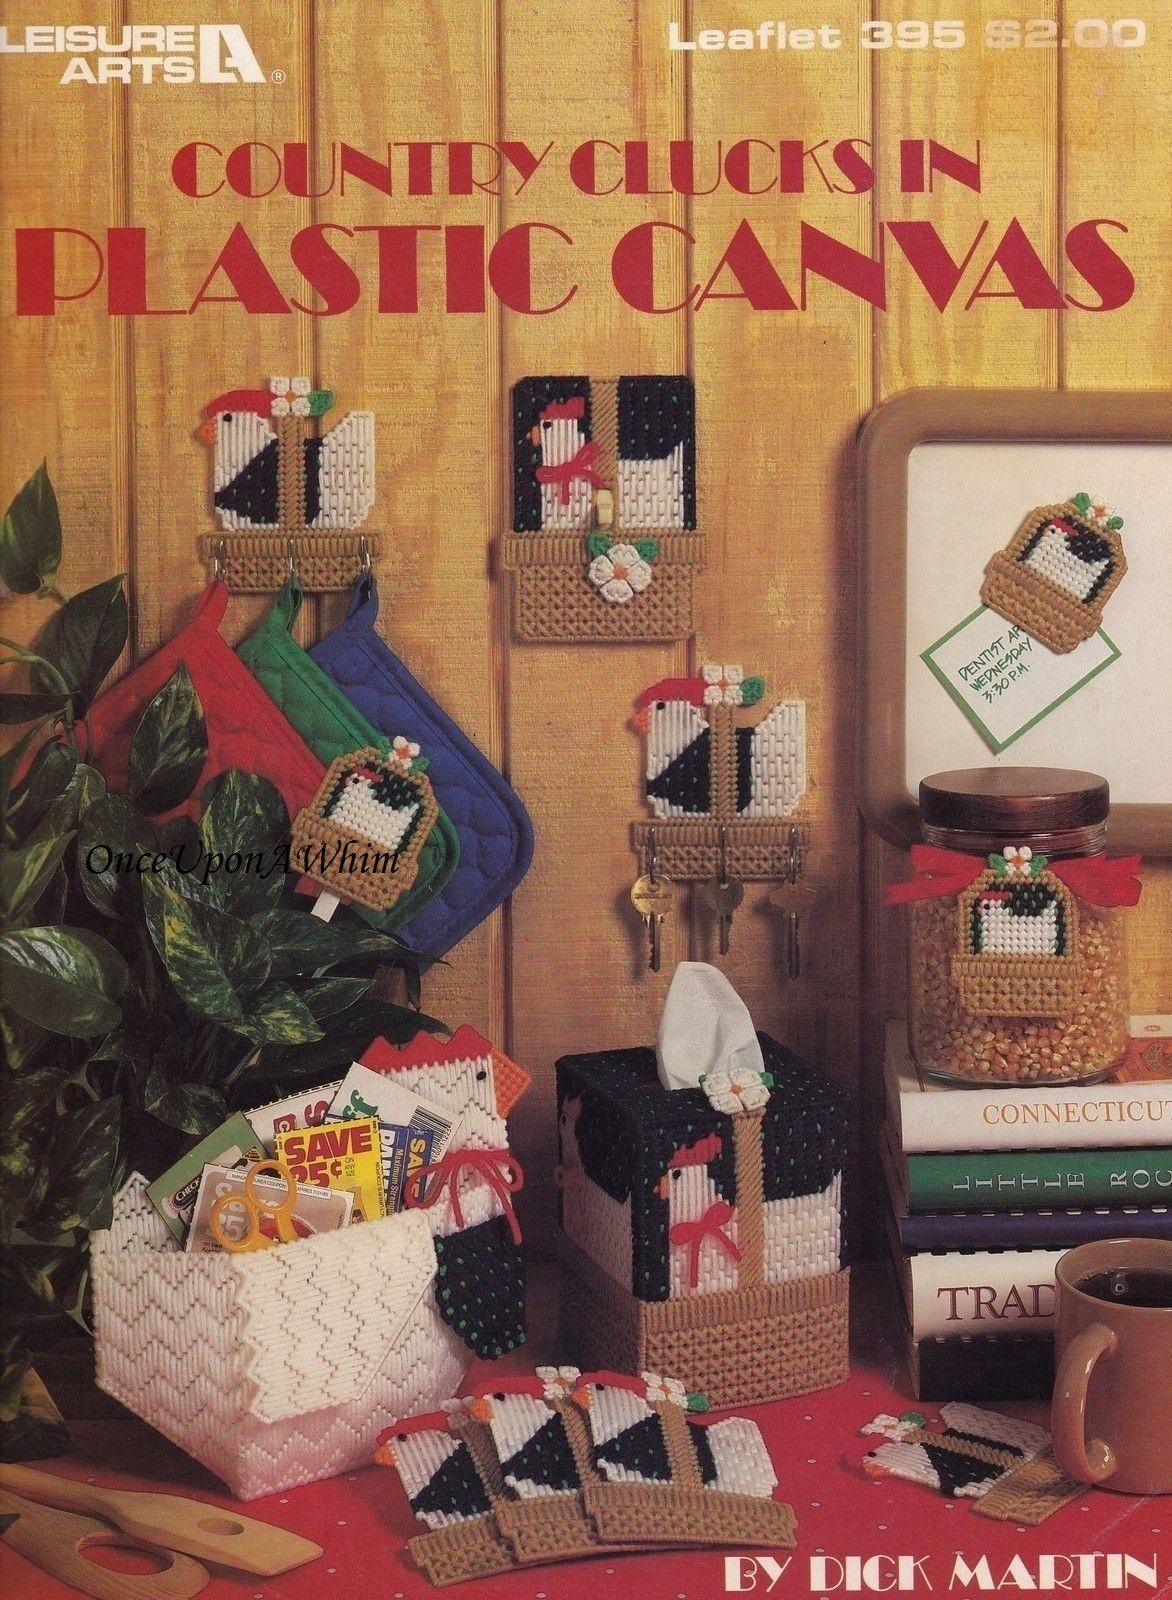 Primary image for Country Clucks, Leisure Arts Home Decor Plastic Canvas Pattern Booklet 395